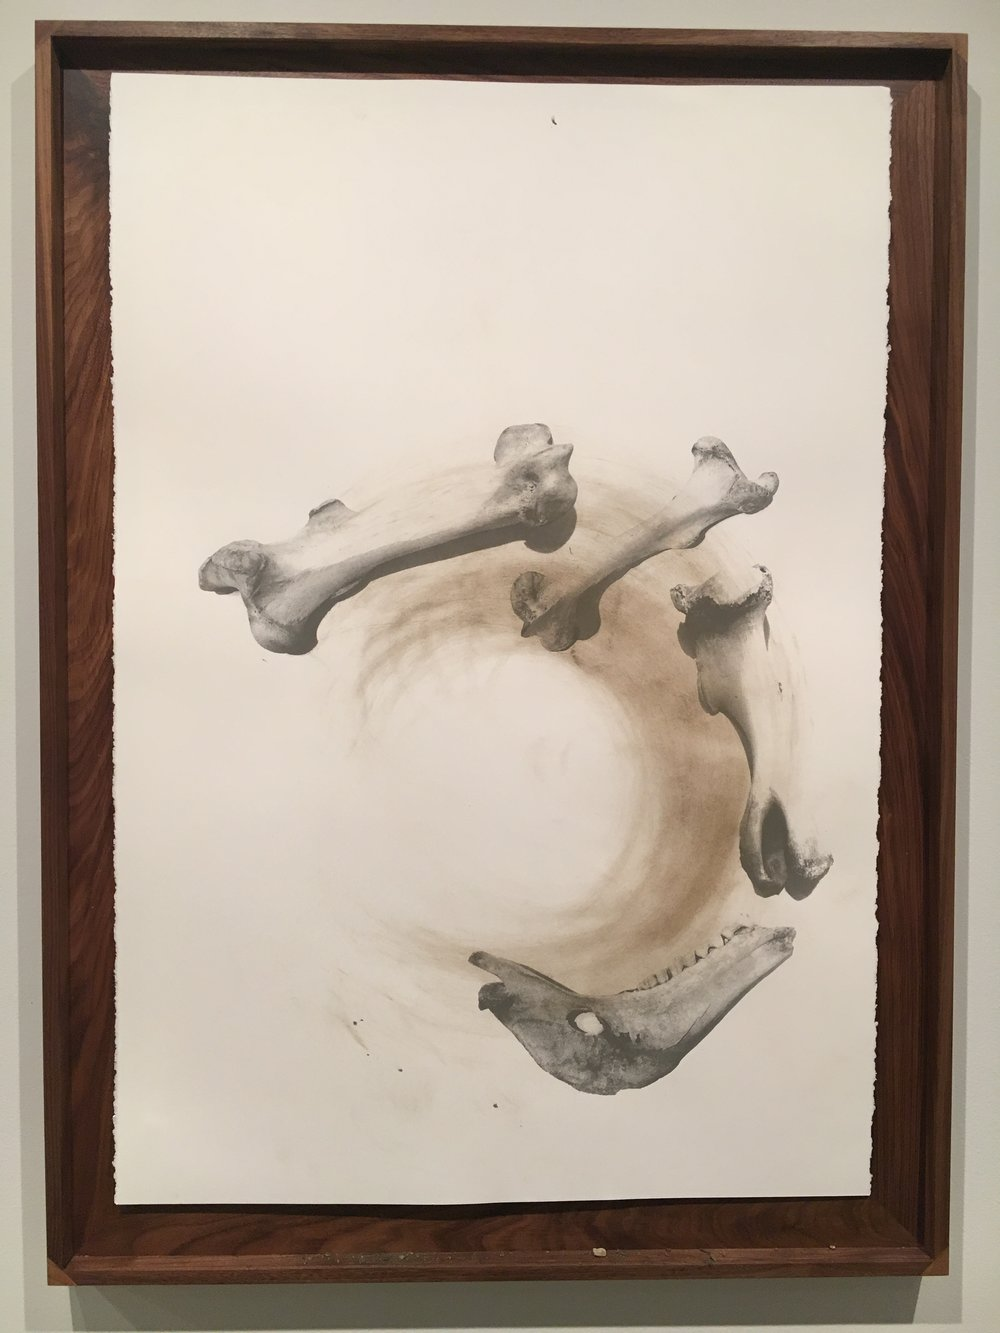 Nate Young,   Casting 3,  2017  Serigraph with earth and graphite on paper  Image courtesy of the Visual Arts Center of Richmond